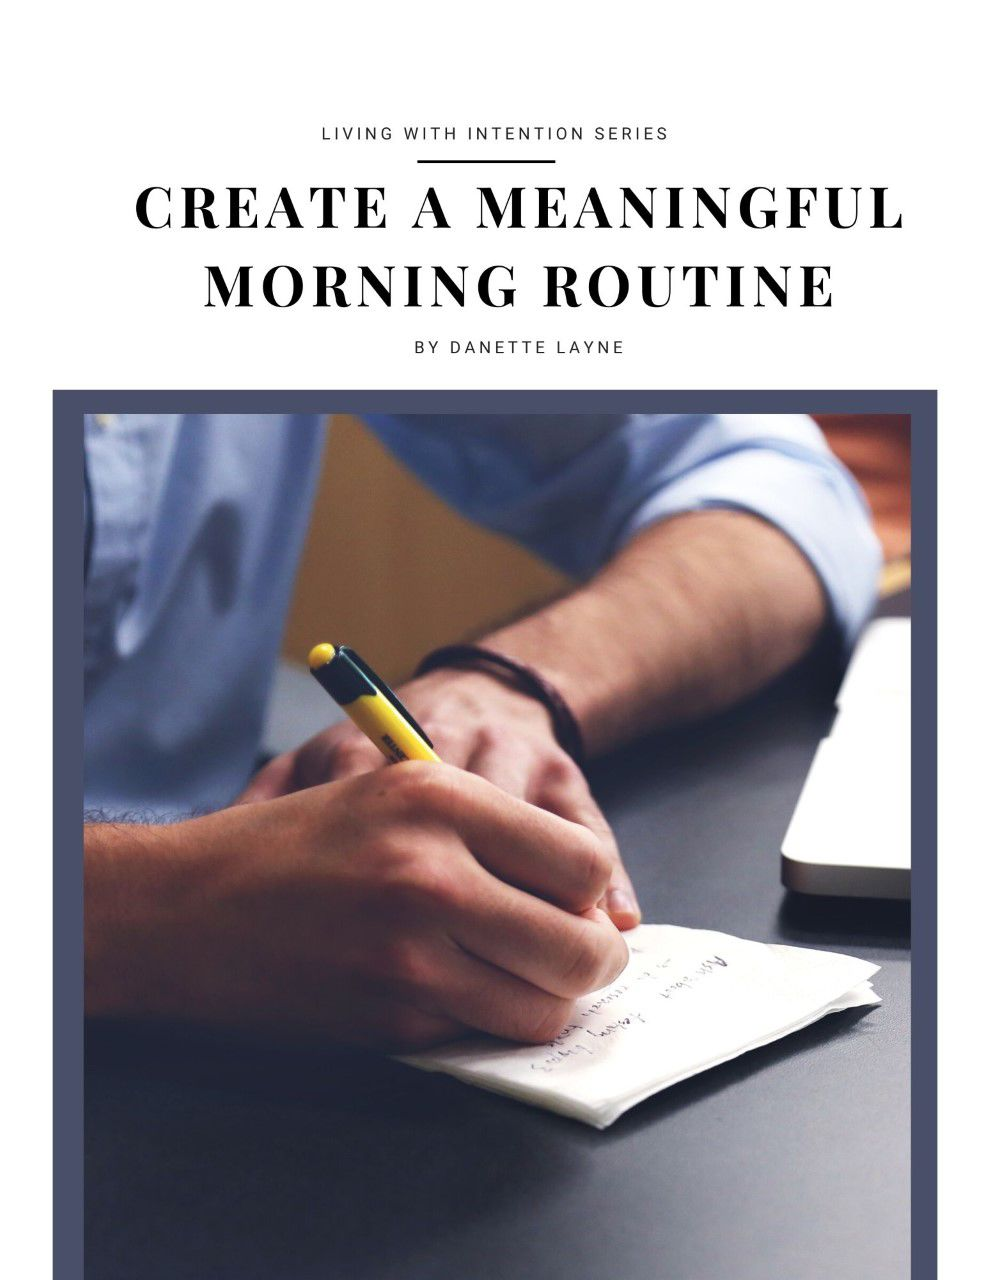 Living With Intention Series: Create A Meaningful Morning Routine